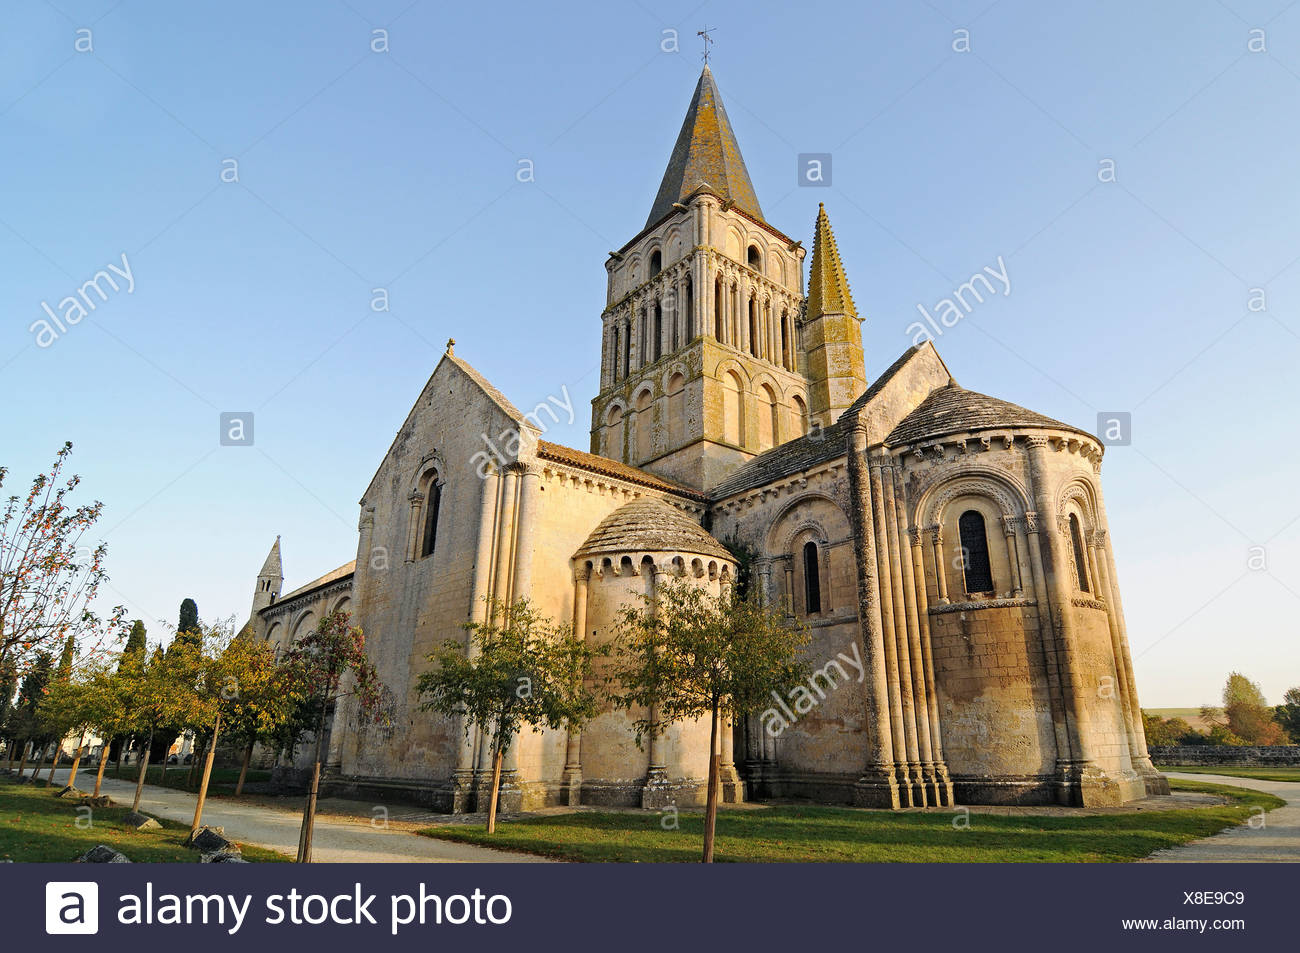 Eglise Saint Pierre church, French Way, Way of St James, Aulnay, Charente-Maritime, Poitou-Charentes, France, Europe Stock Photo